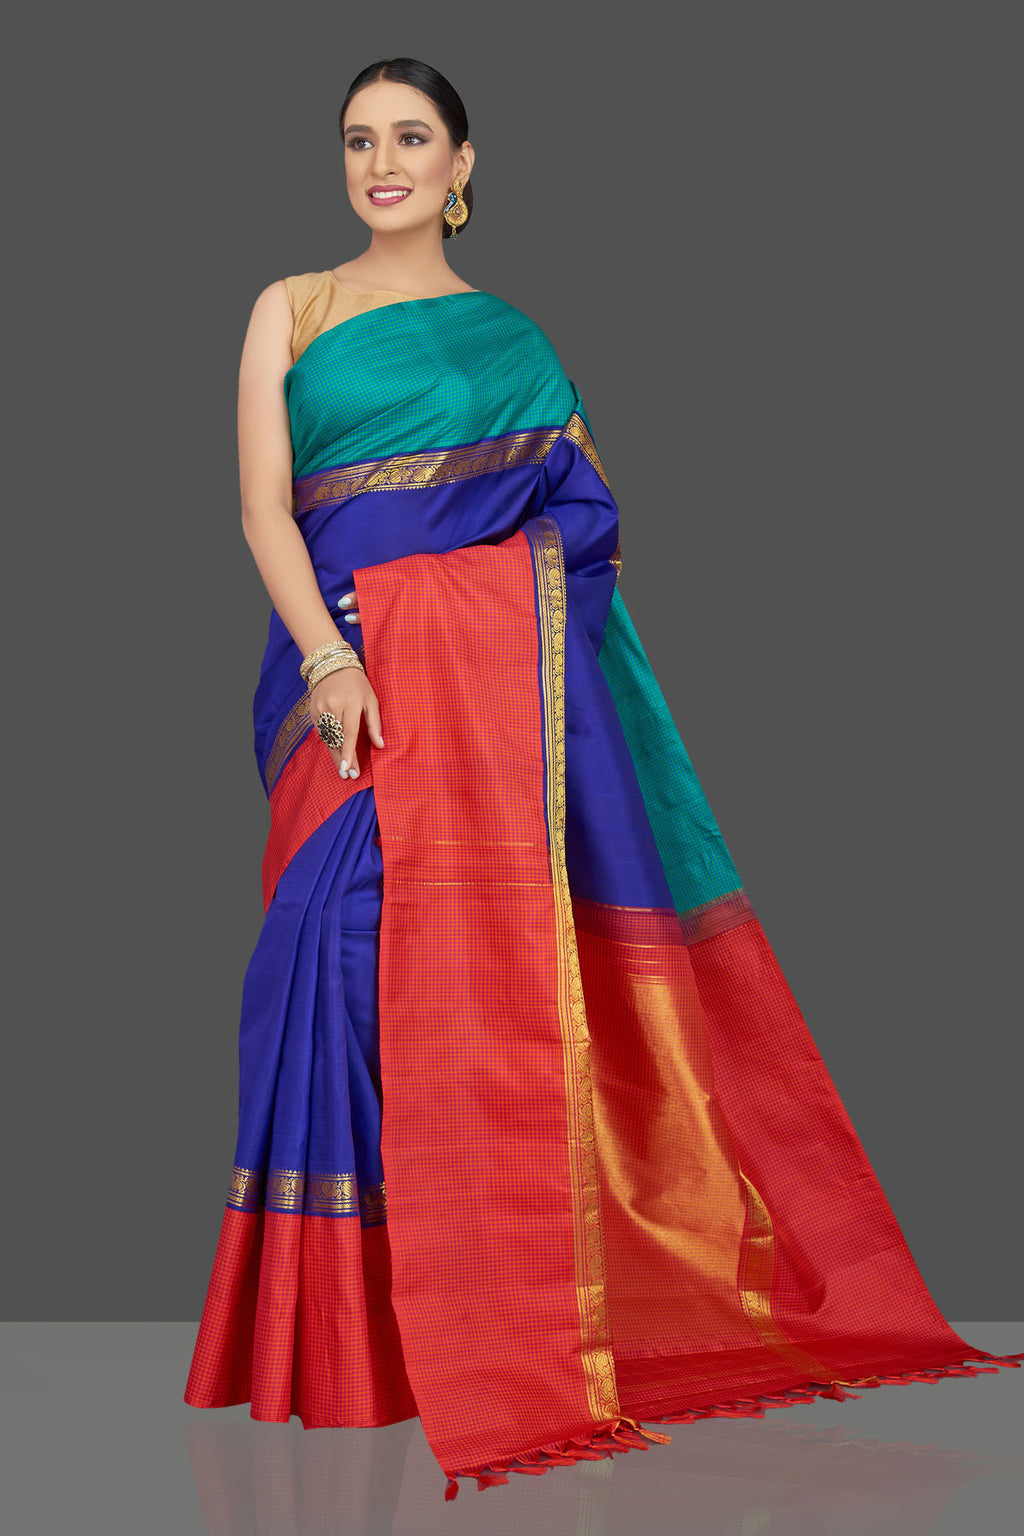 Shop gorgeous blue Kanjivaram saree online in USA with green and red border. Look beautiful on weddings and special occasions in stunning Kanchipuram saris, pure silk sarees, handwoven saris from Pure Elegance Indian fashion store in USA.-full view